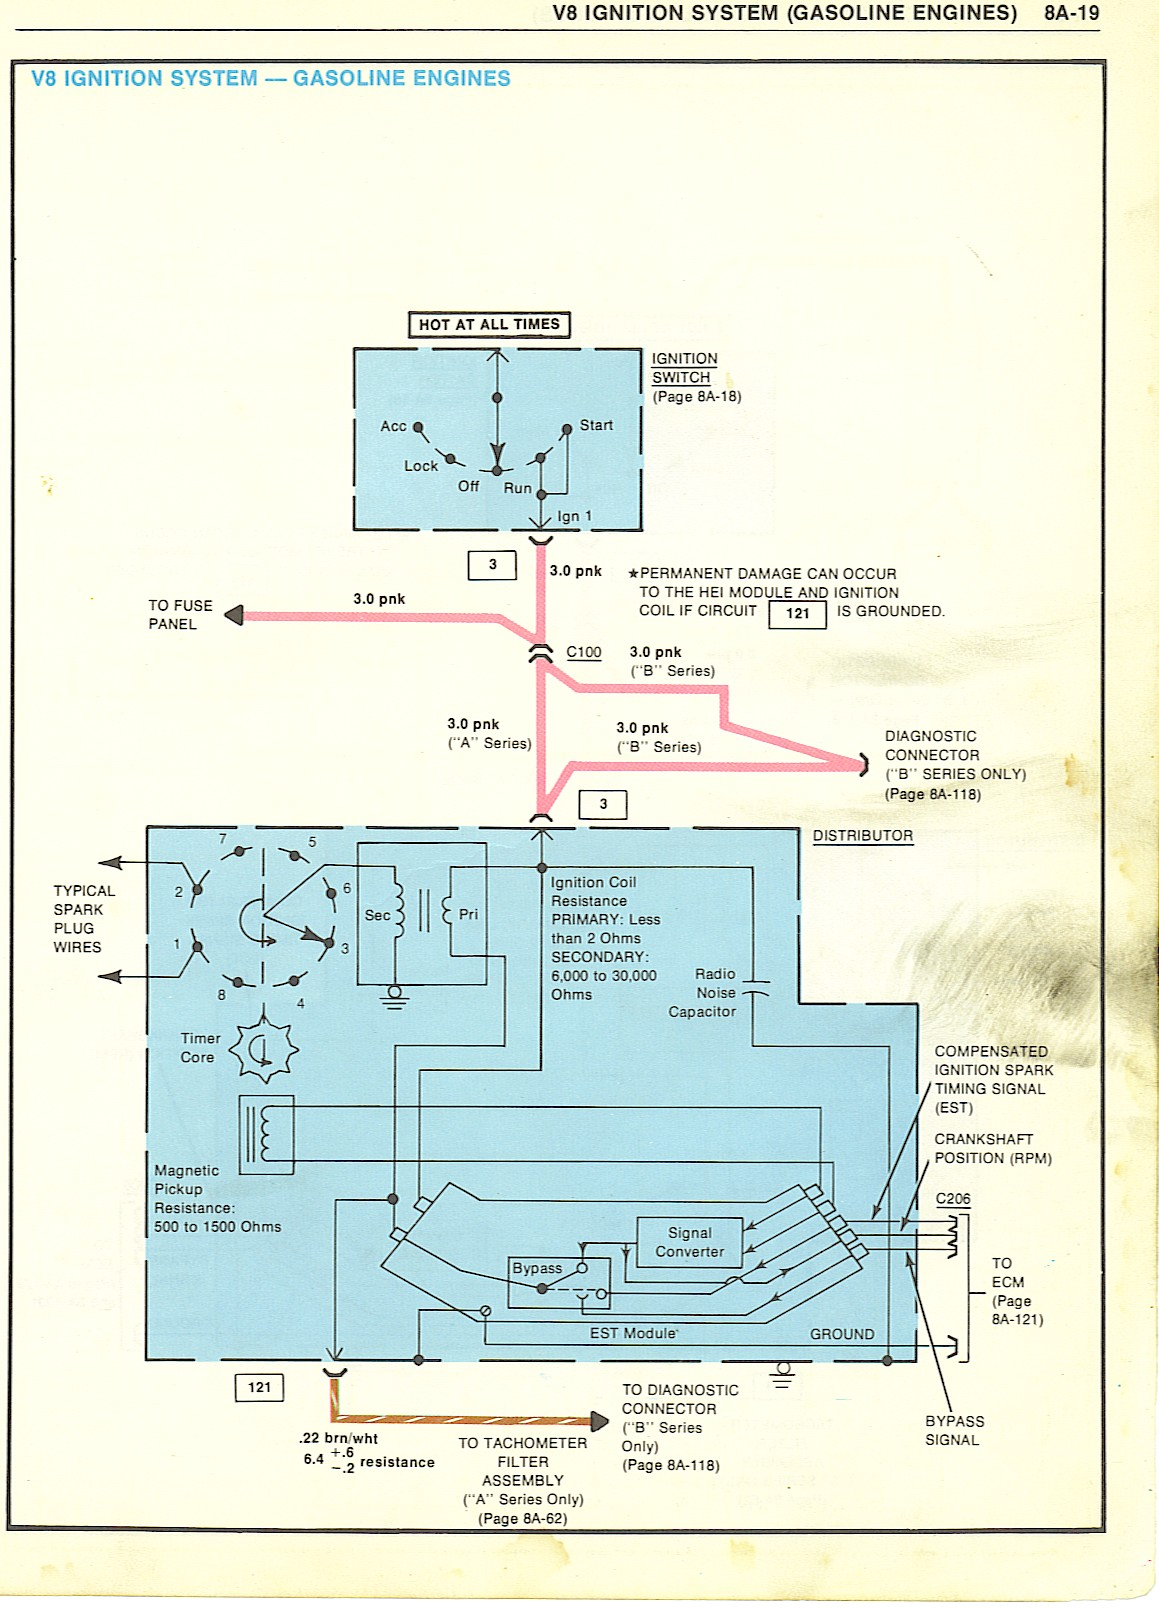 1969 Bronco 302 Wiring Diagram additionally 72 Corvette Wiper Relay Location in addition Showthread together with 53 Ford F100 Wiring Diagram as well 1306 Upgrading A Points Distributor To An Hei System. on 1970 chevy truck ignition wiring